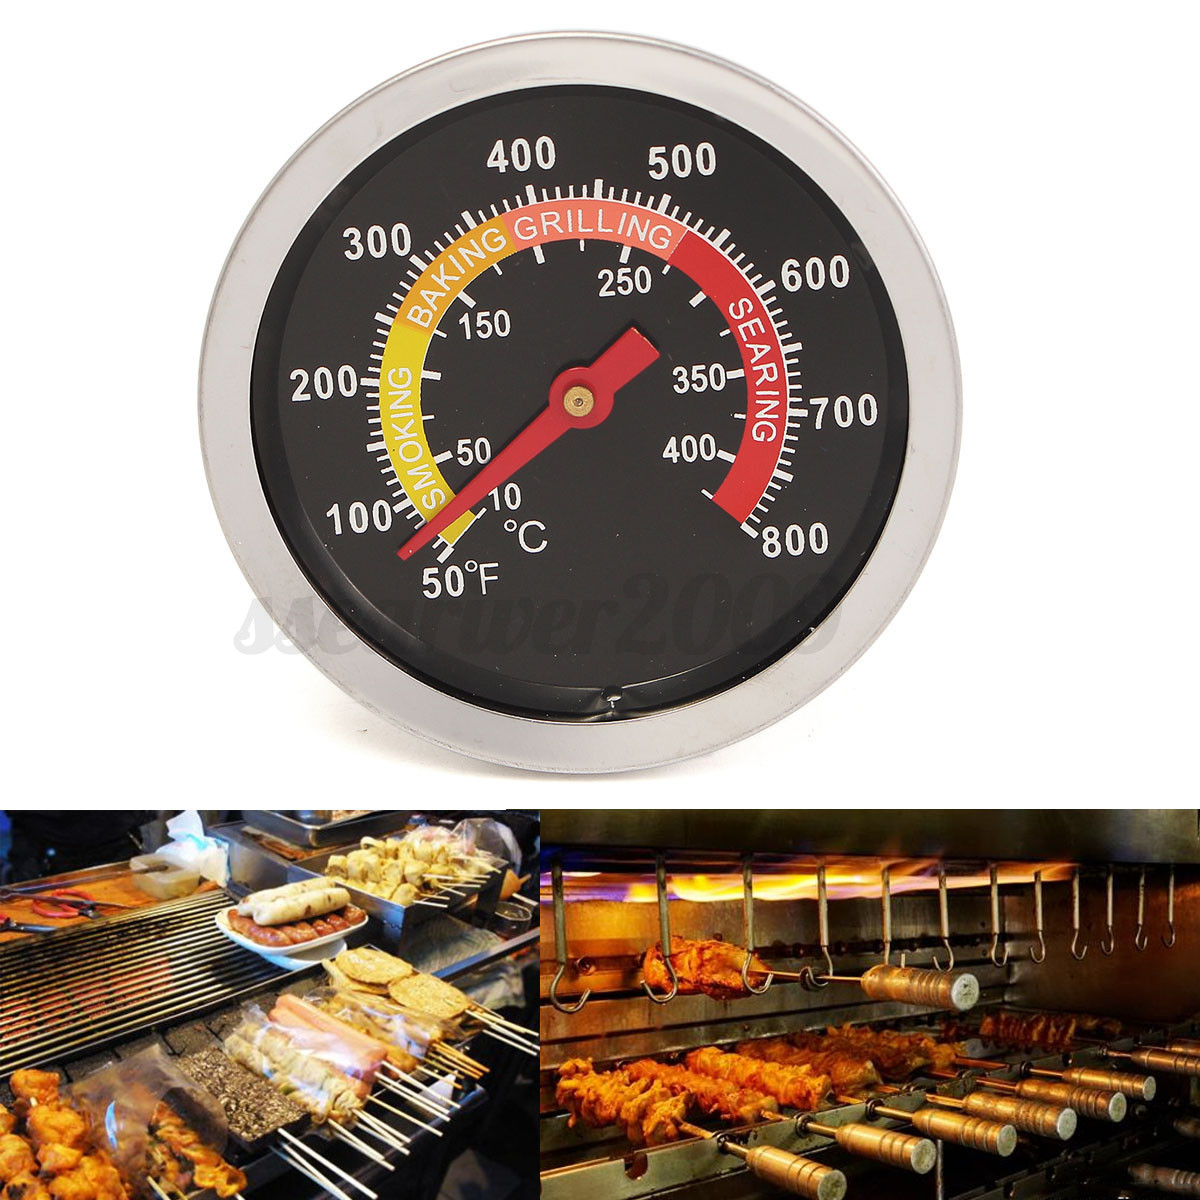 400 Barbecue BBQ Smoker Grill Thermometer Temperature Controller Gauge #B79514